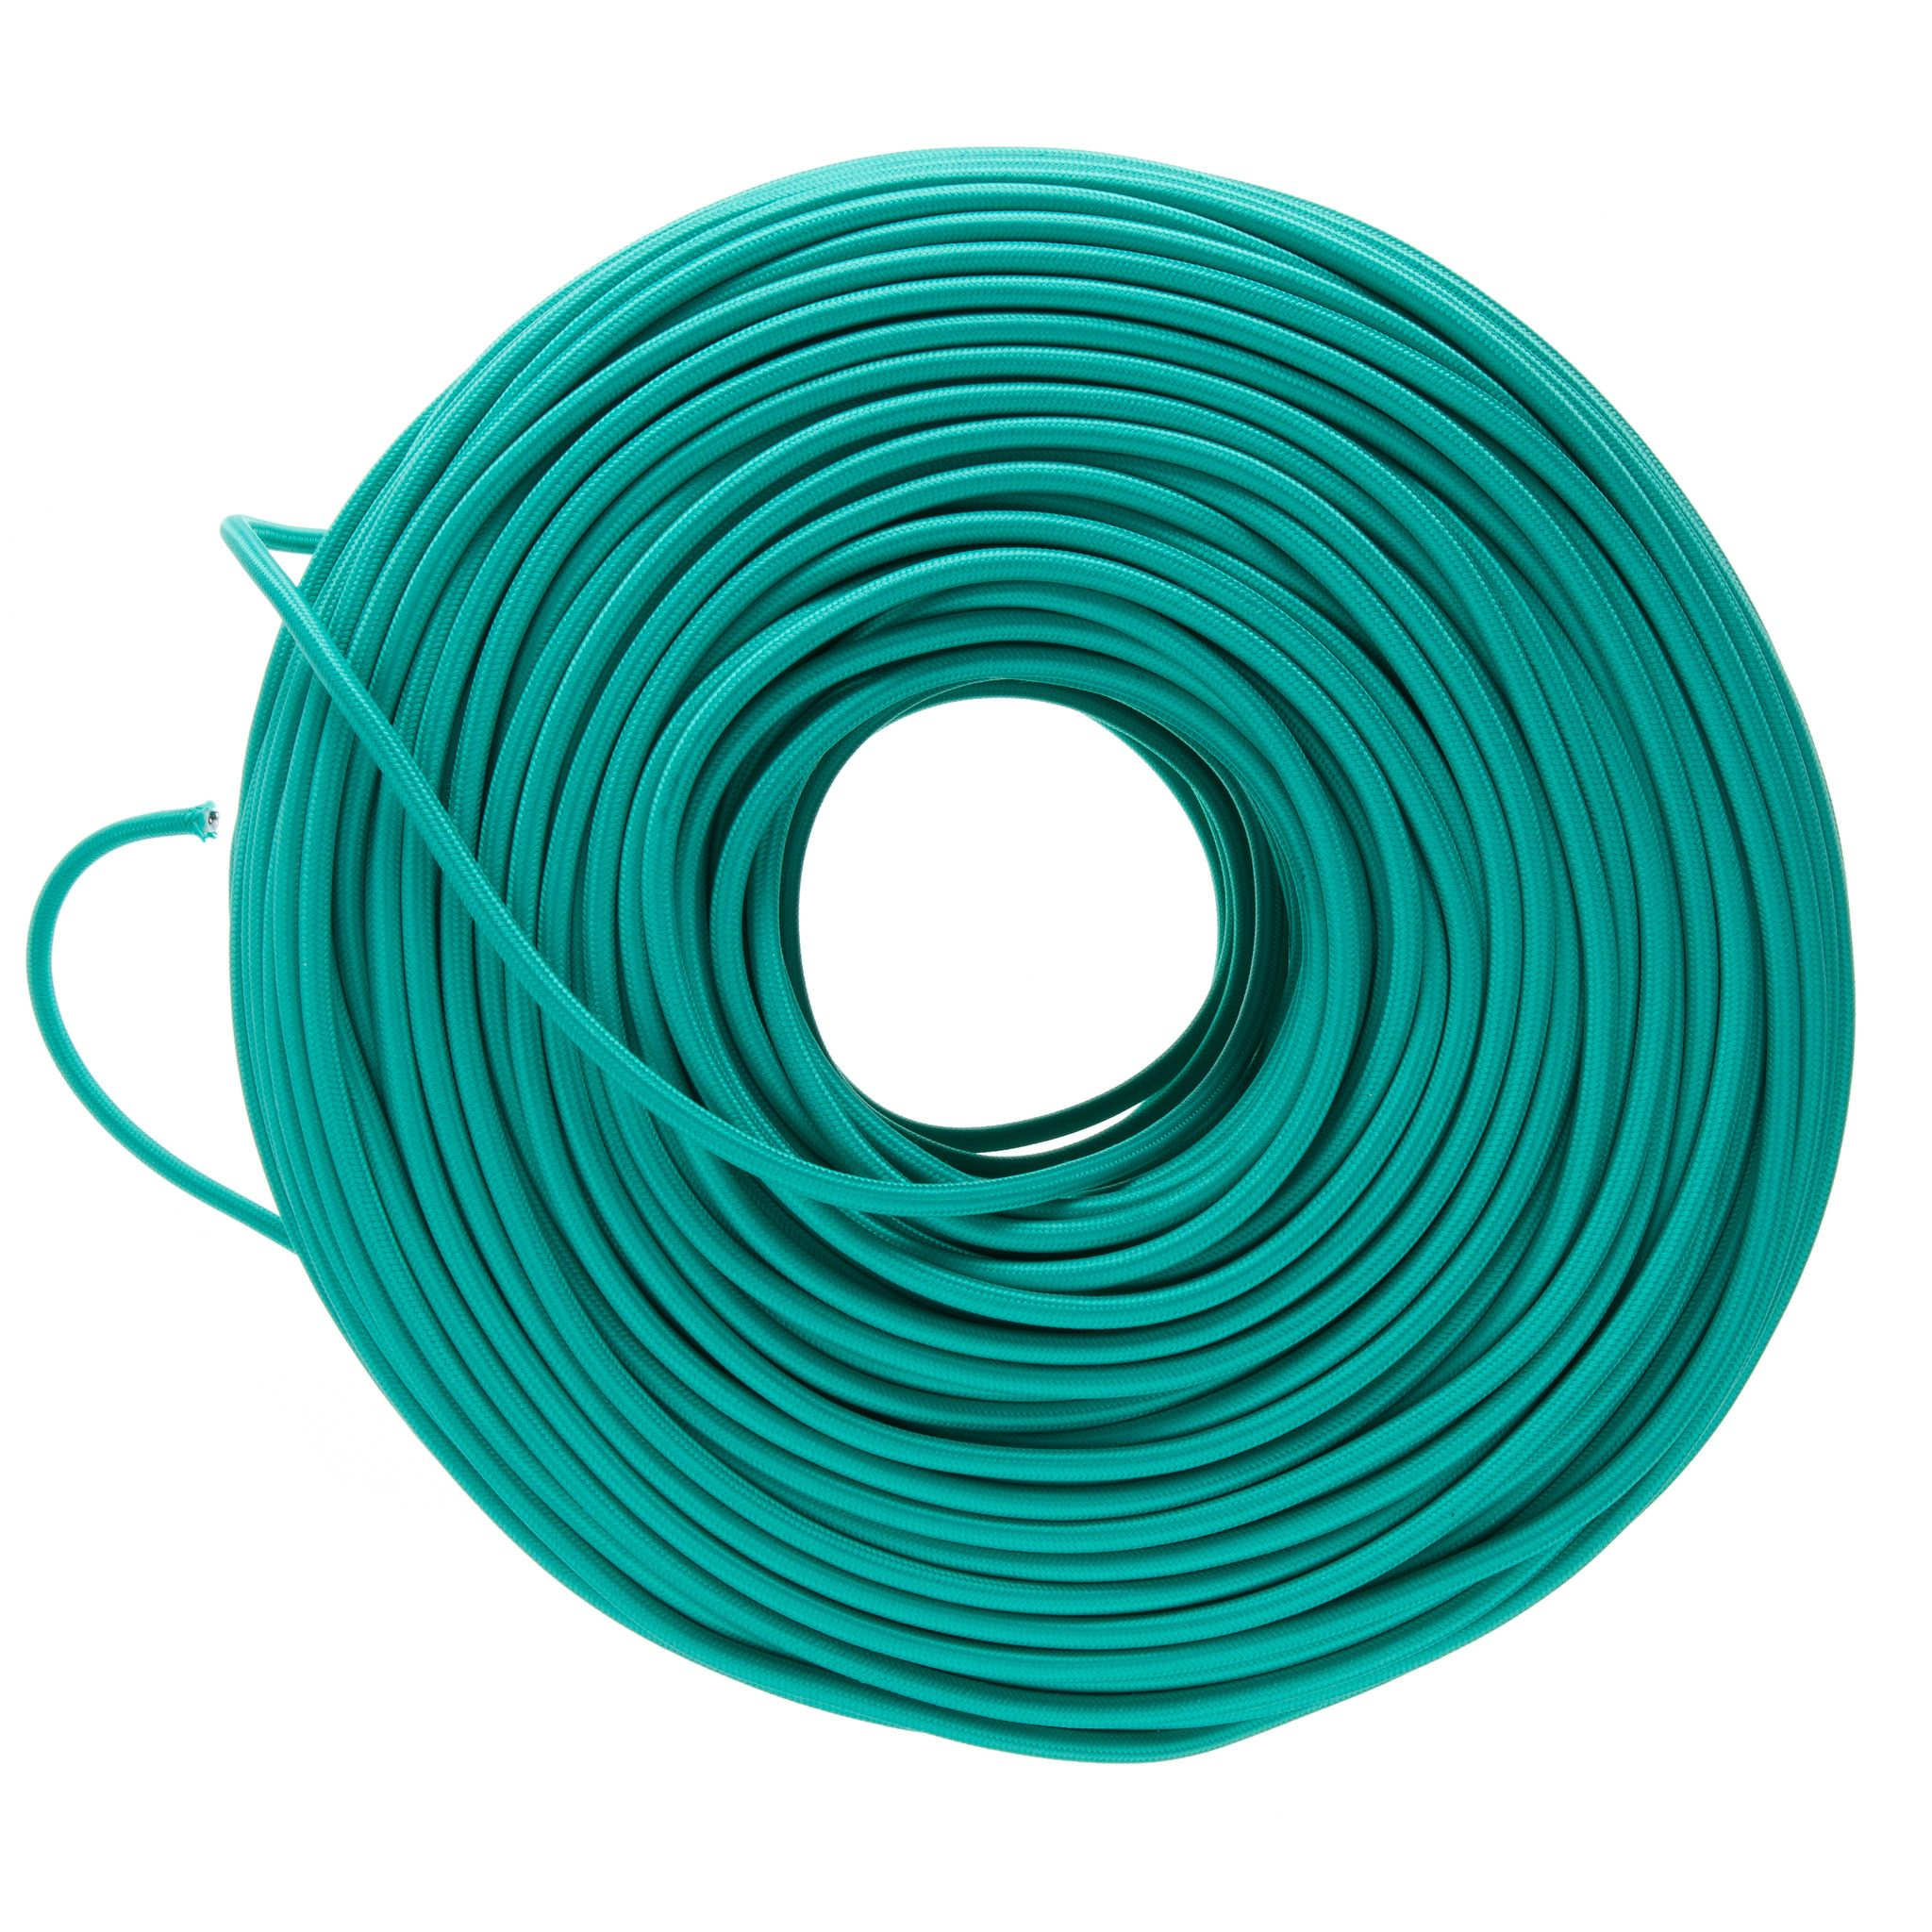 Cloth Covered Electrical Wire- Teal | Color Cord Company